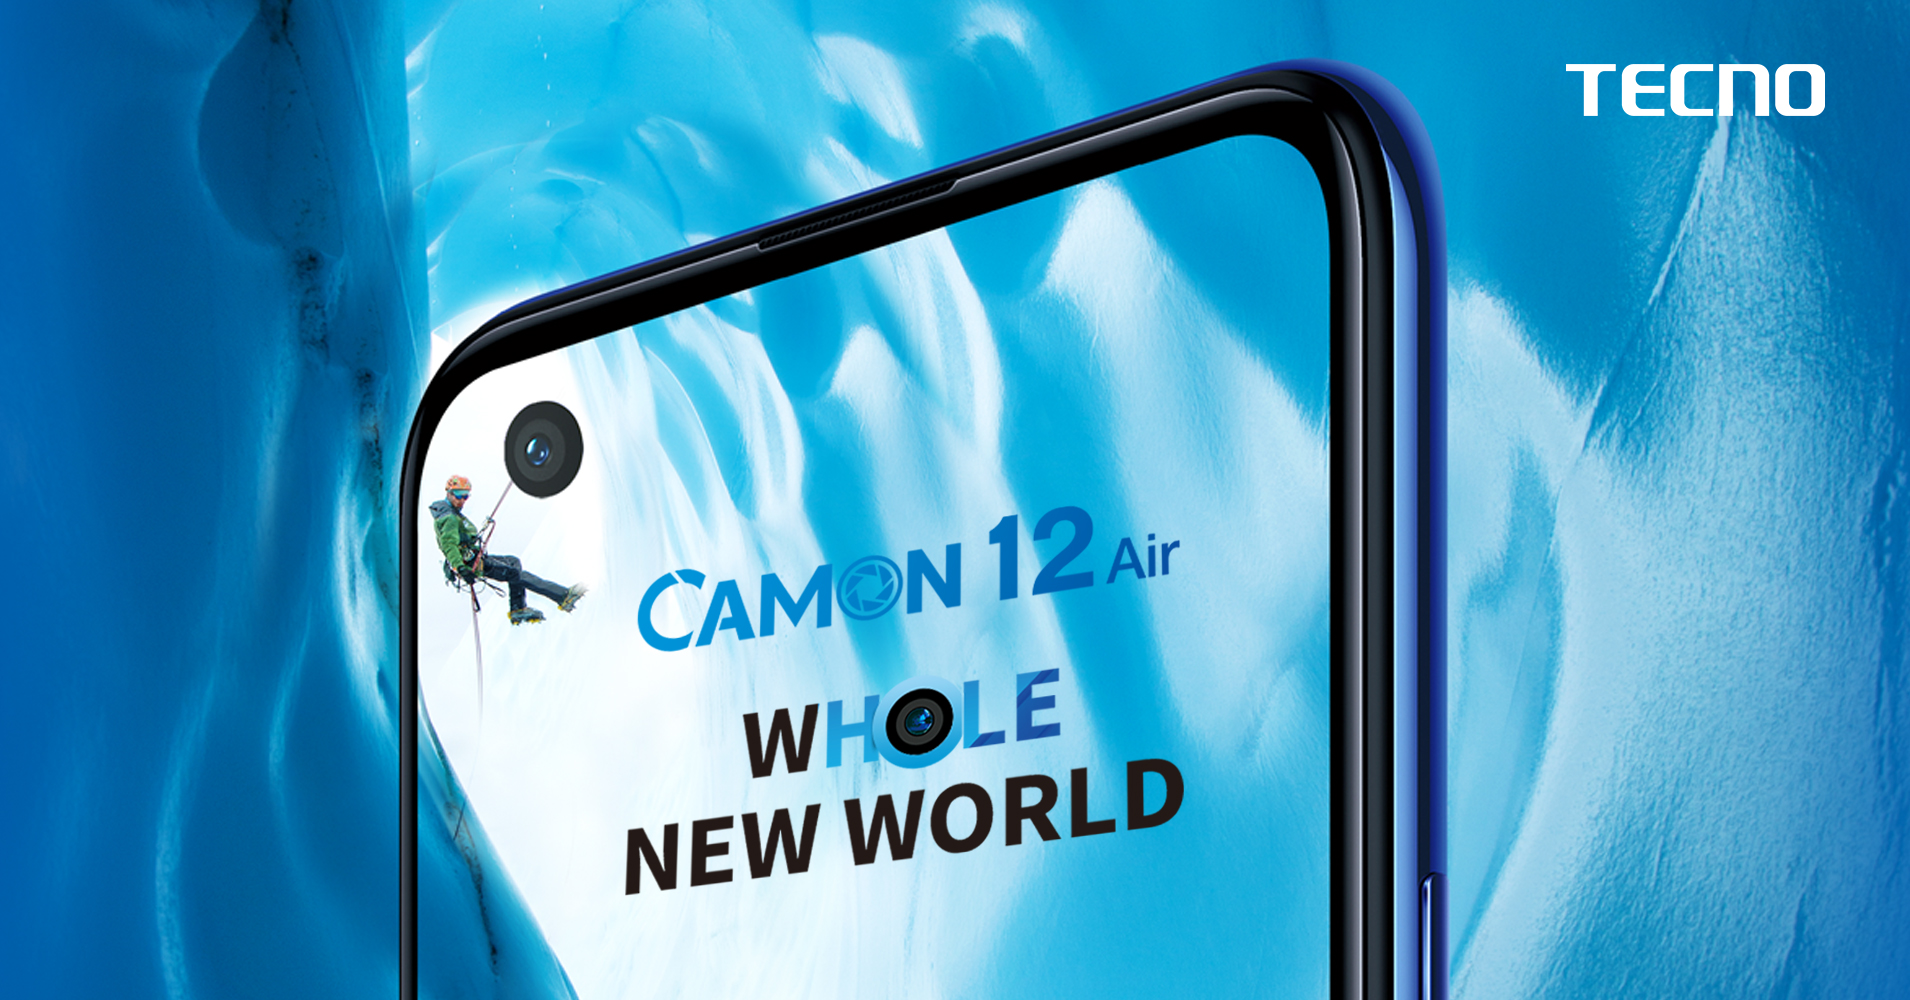 tecno camor 12 air launched in pakistan